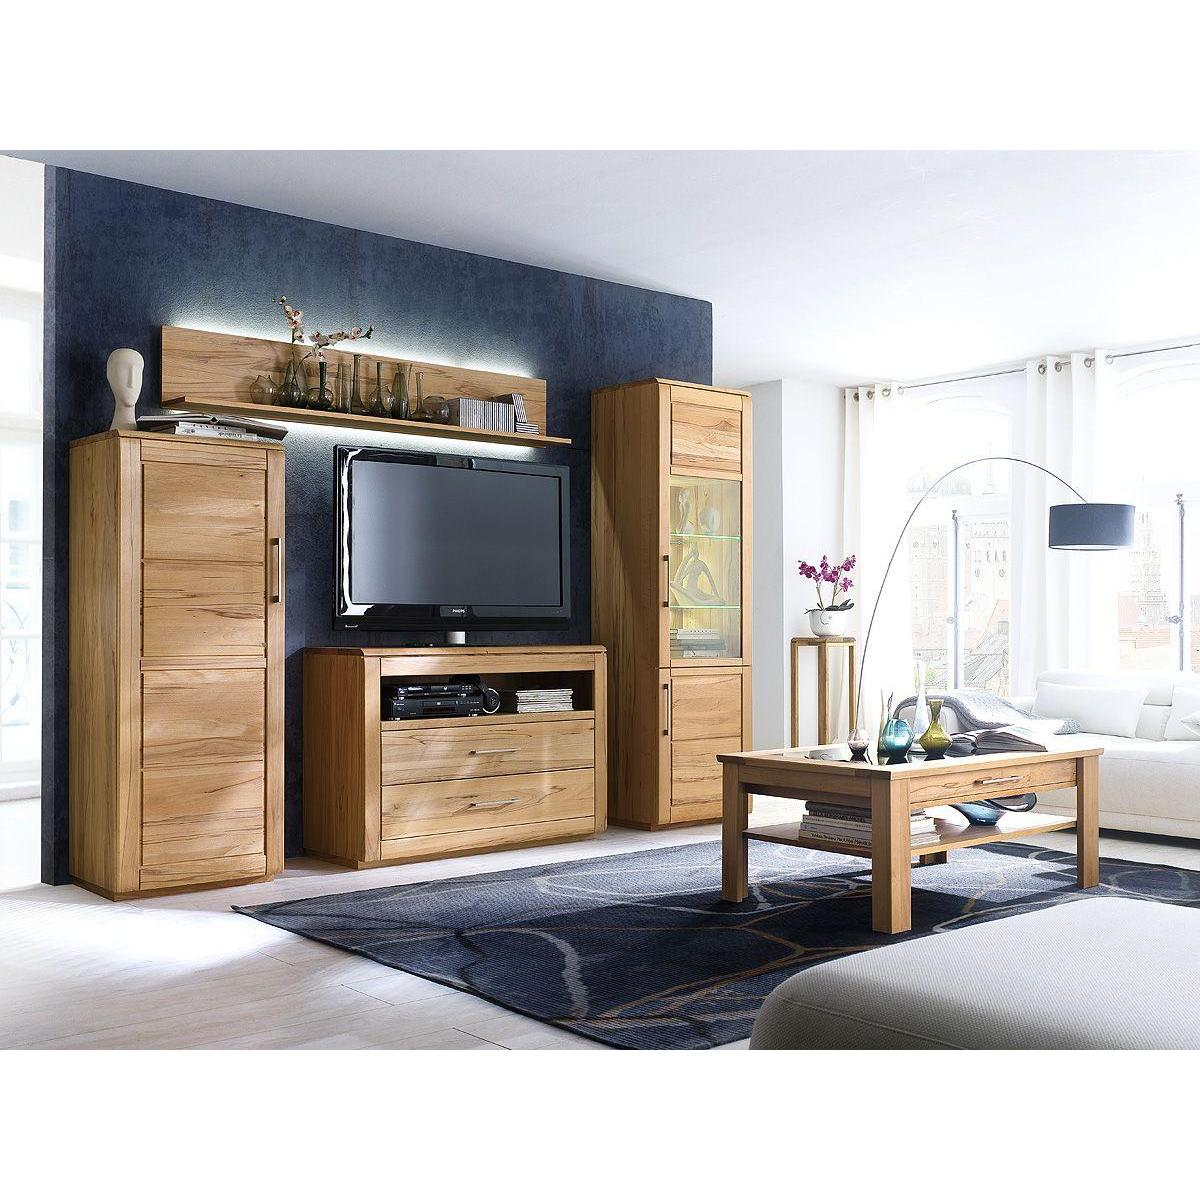 74 wohnzimmereinrichtung ahorn wohnzimmerschrank in. Black Bedroom Furniture Sets. Home Design Ideas